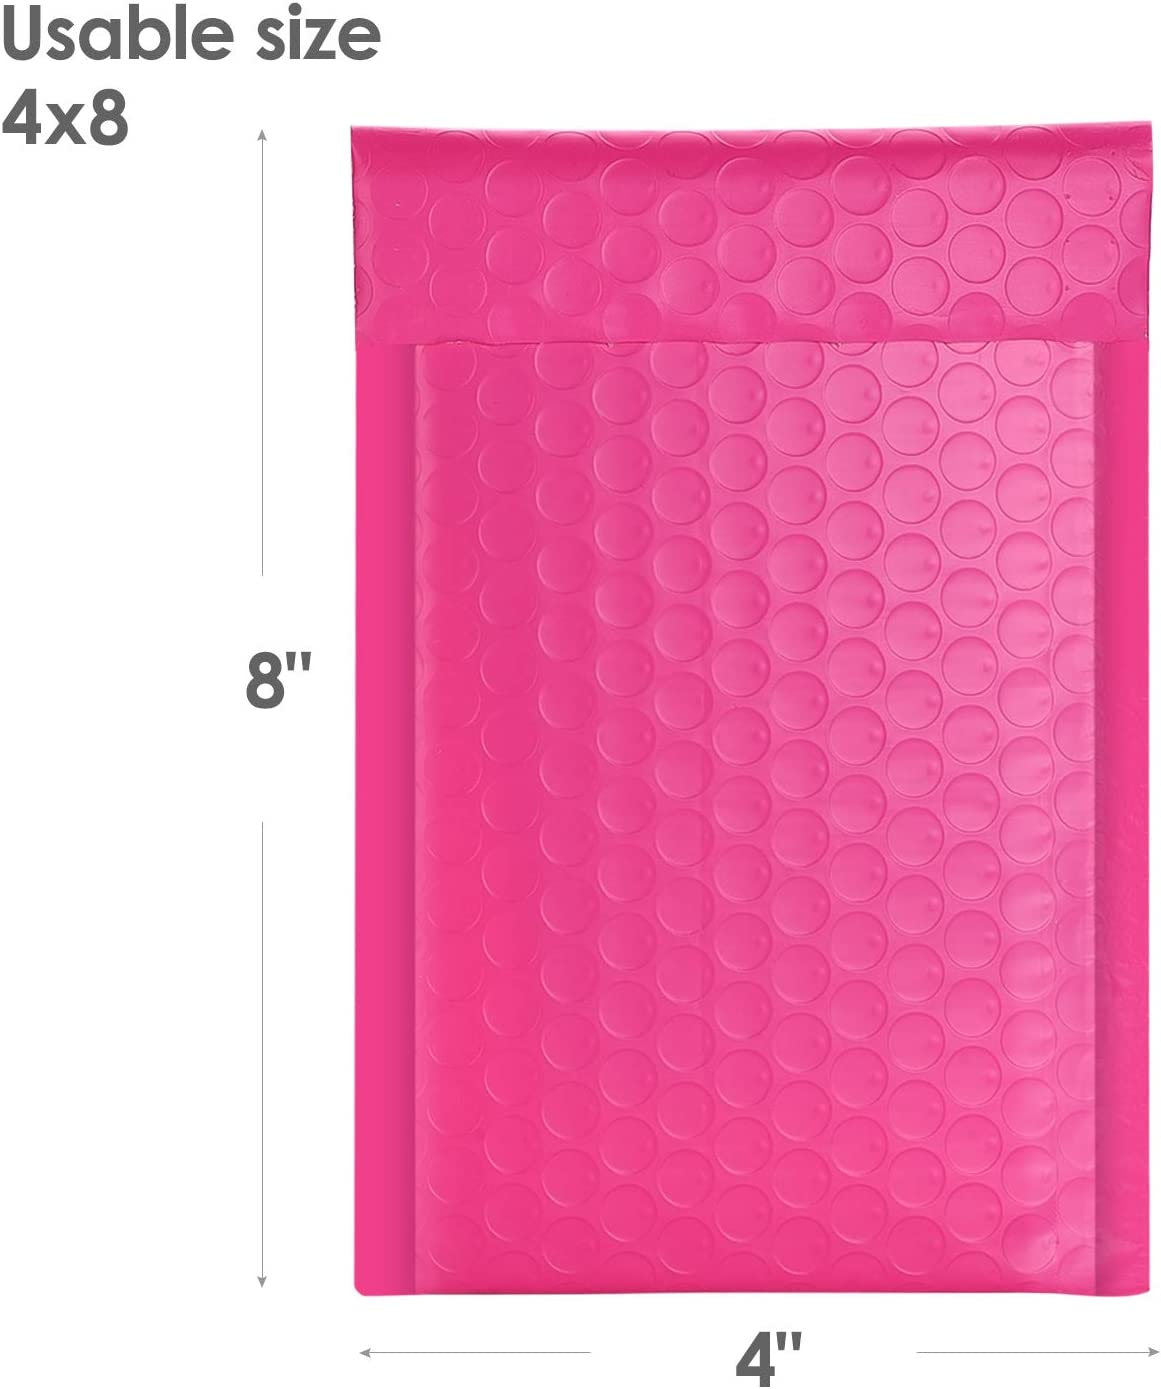 Metronic 50pcs Poly Bubble Mailers 4x8 Inch Padded Envelopes #000 Bubble Lined Poly Mailer Self Seal Pink